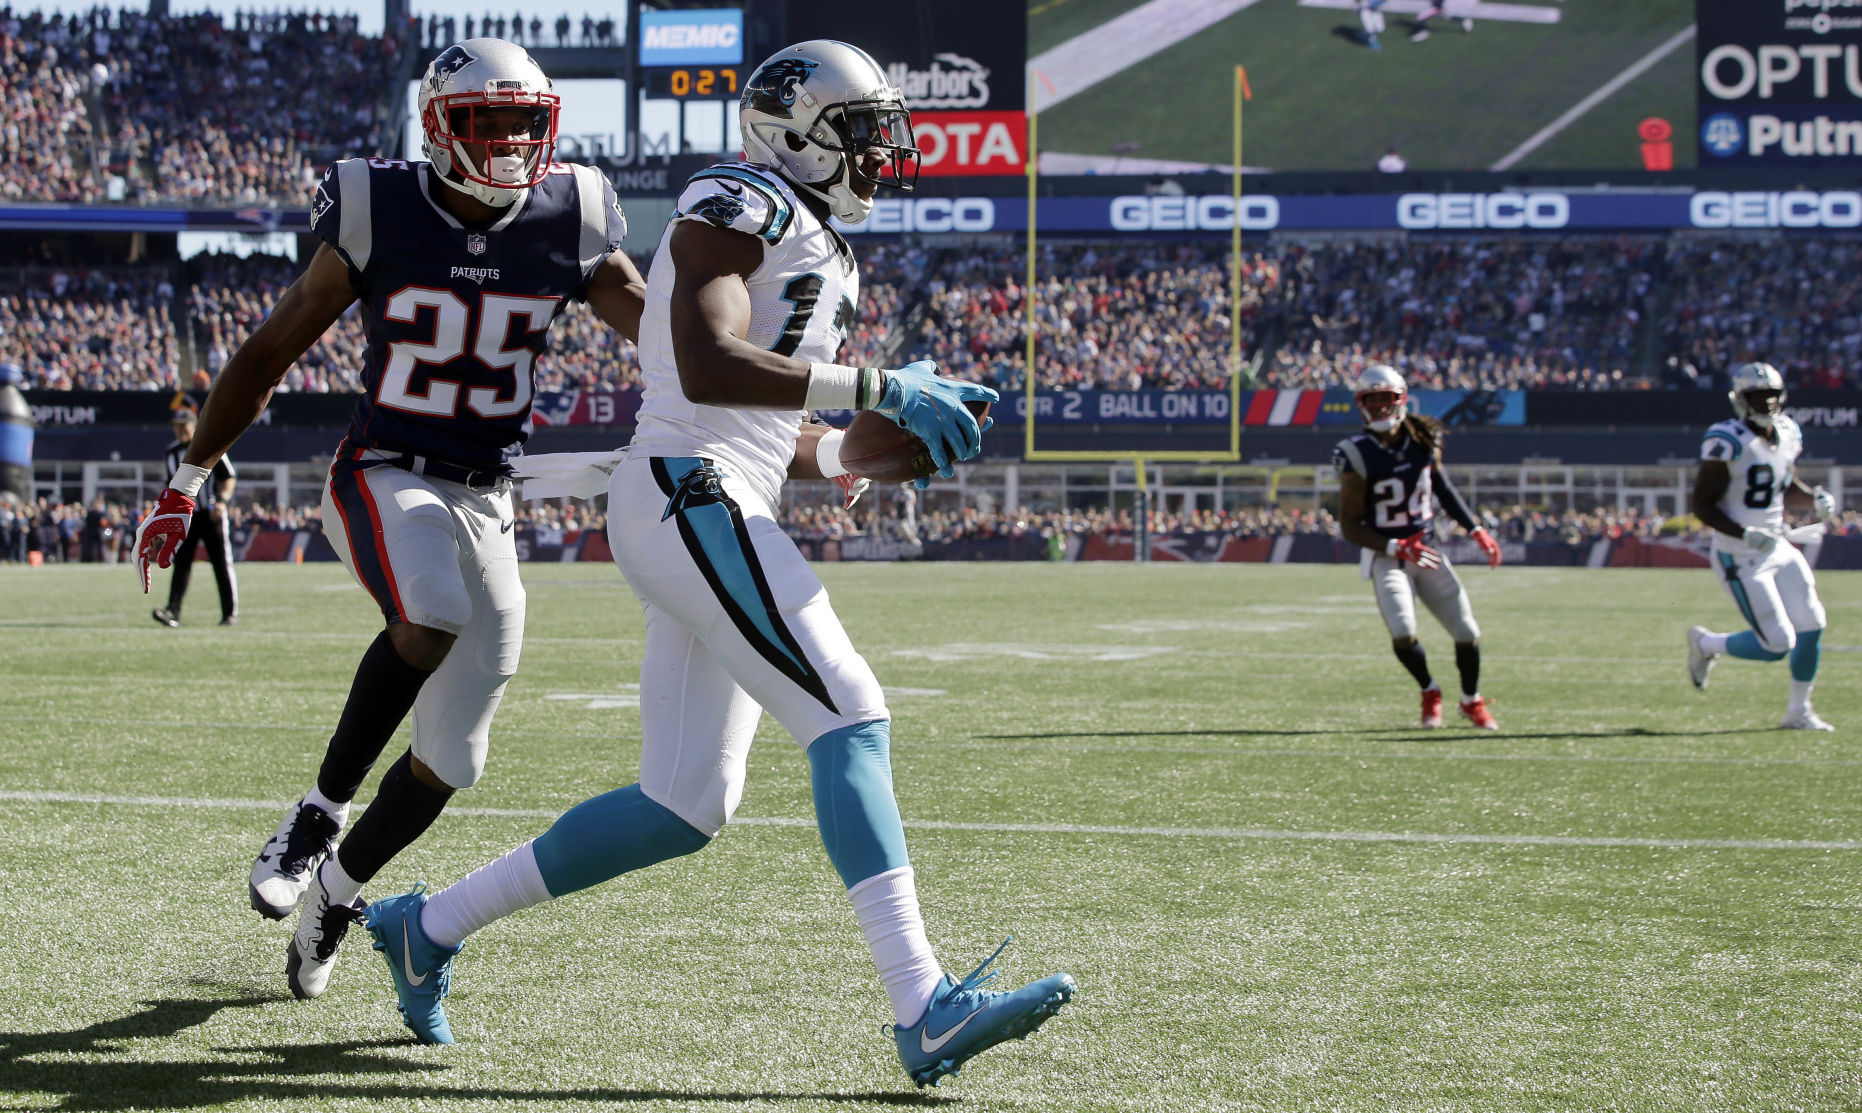 Panthers struggling for offense as they face Patriots today